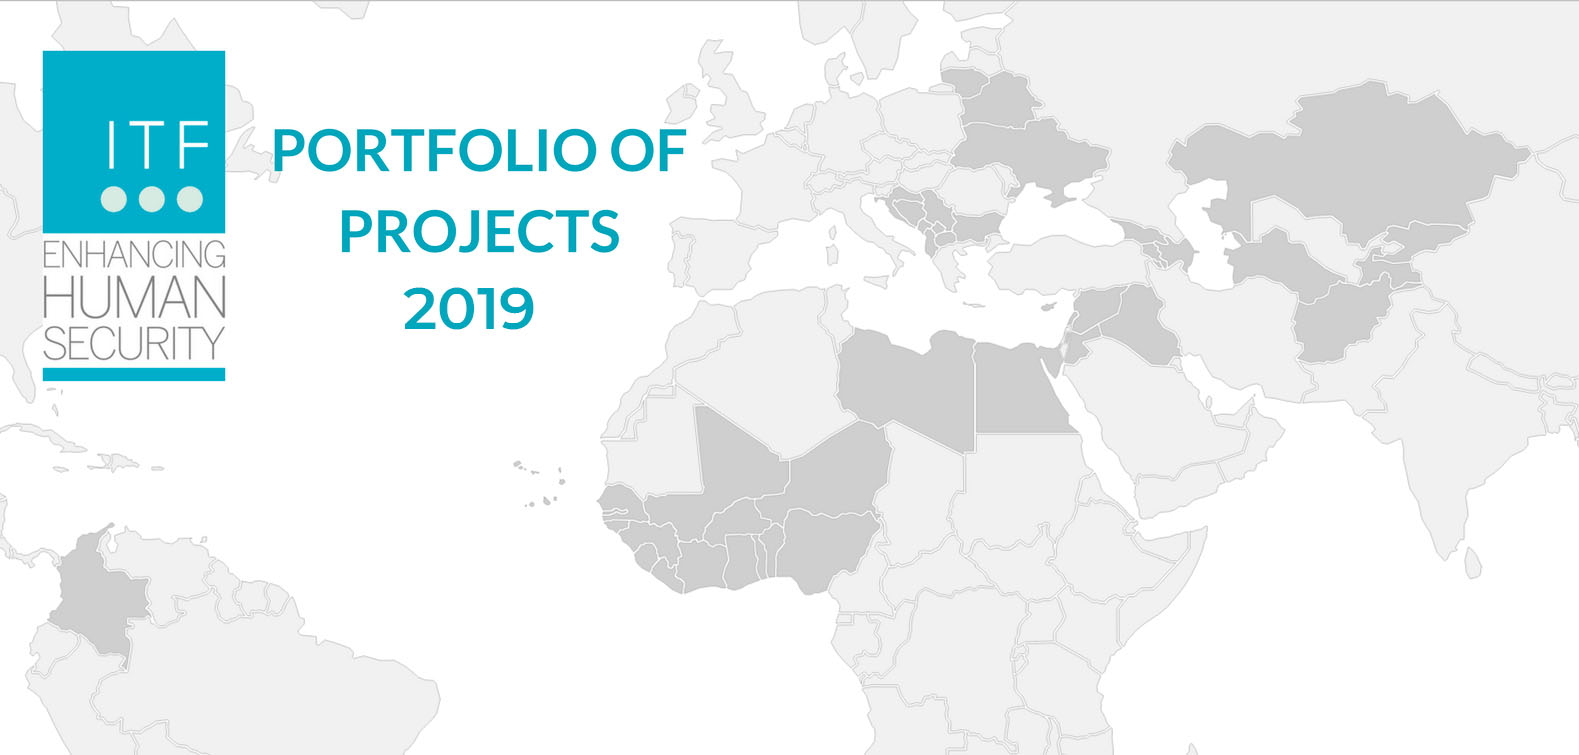 ITF Portfolio of Projects 2019